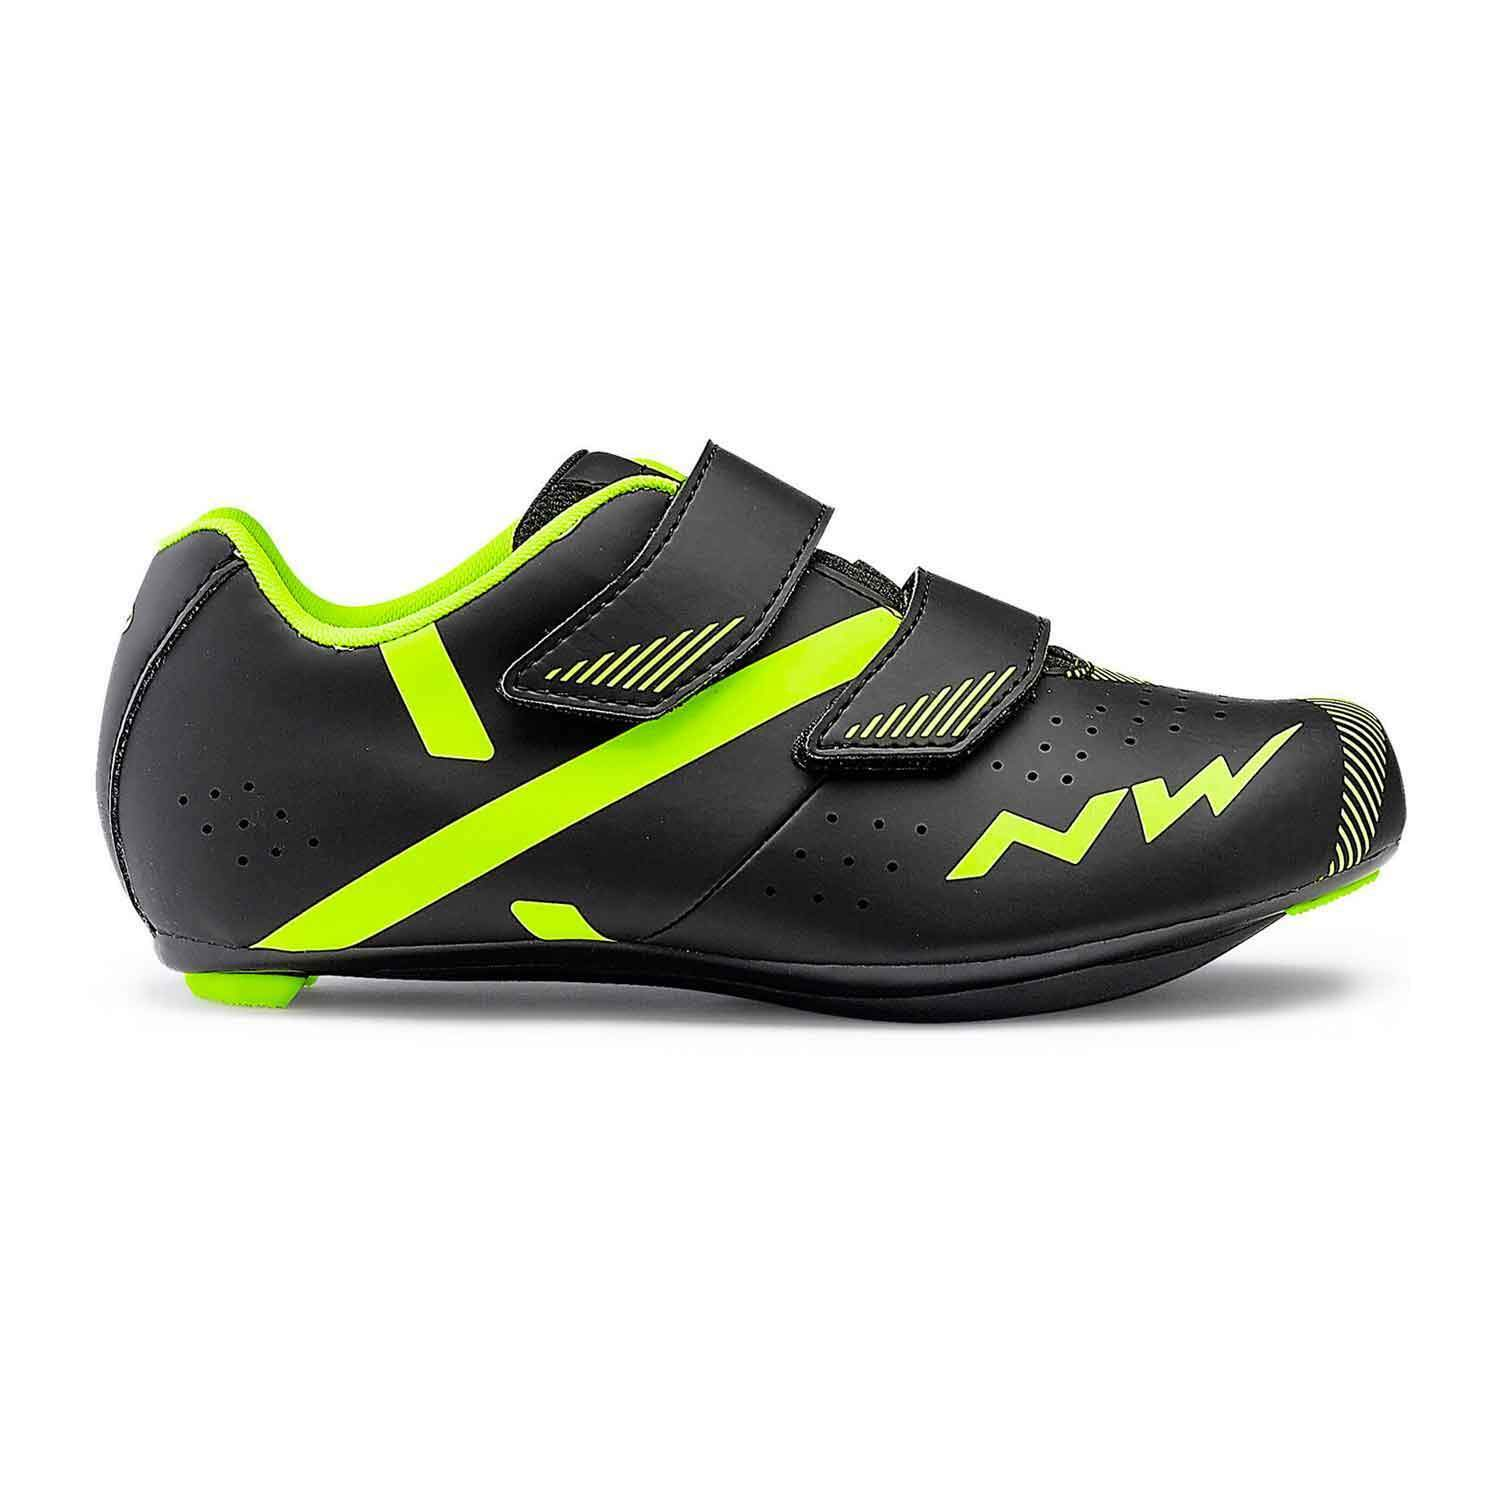 Northwave Torpedo Kids Road Cycling shoes (Junior sizes)